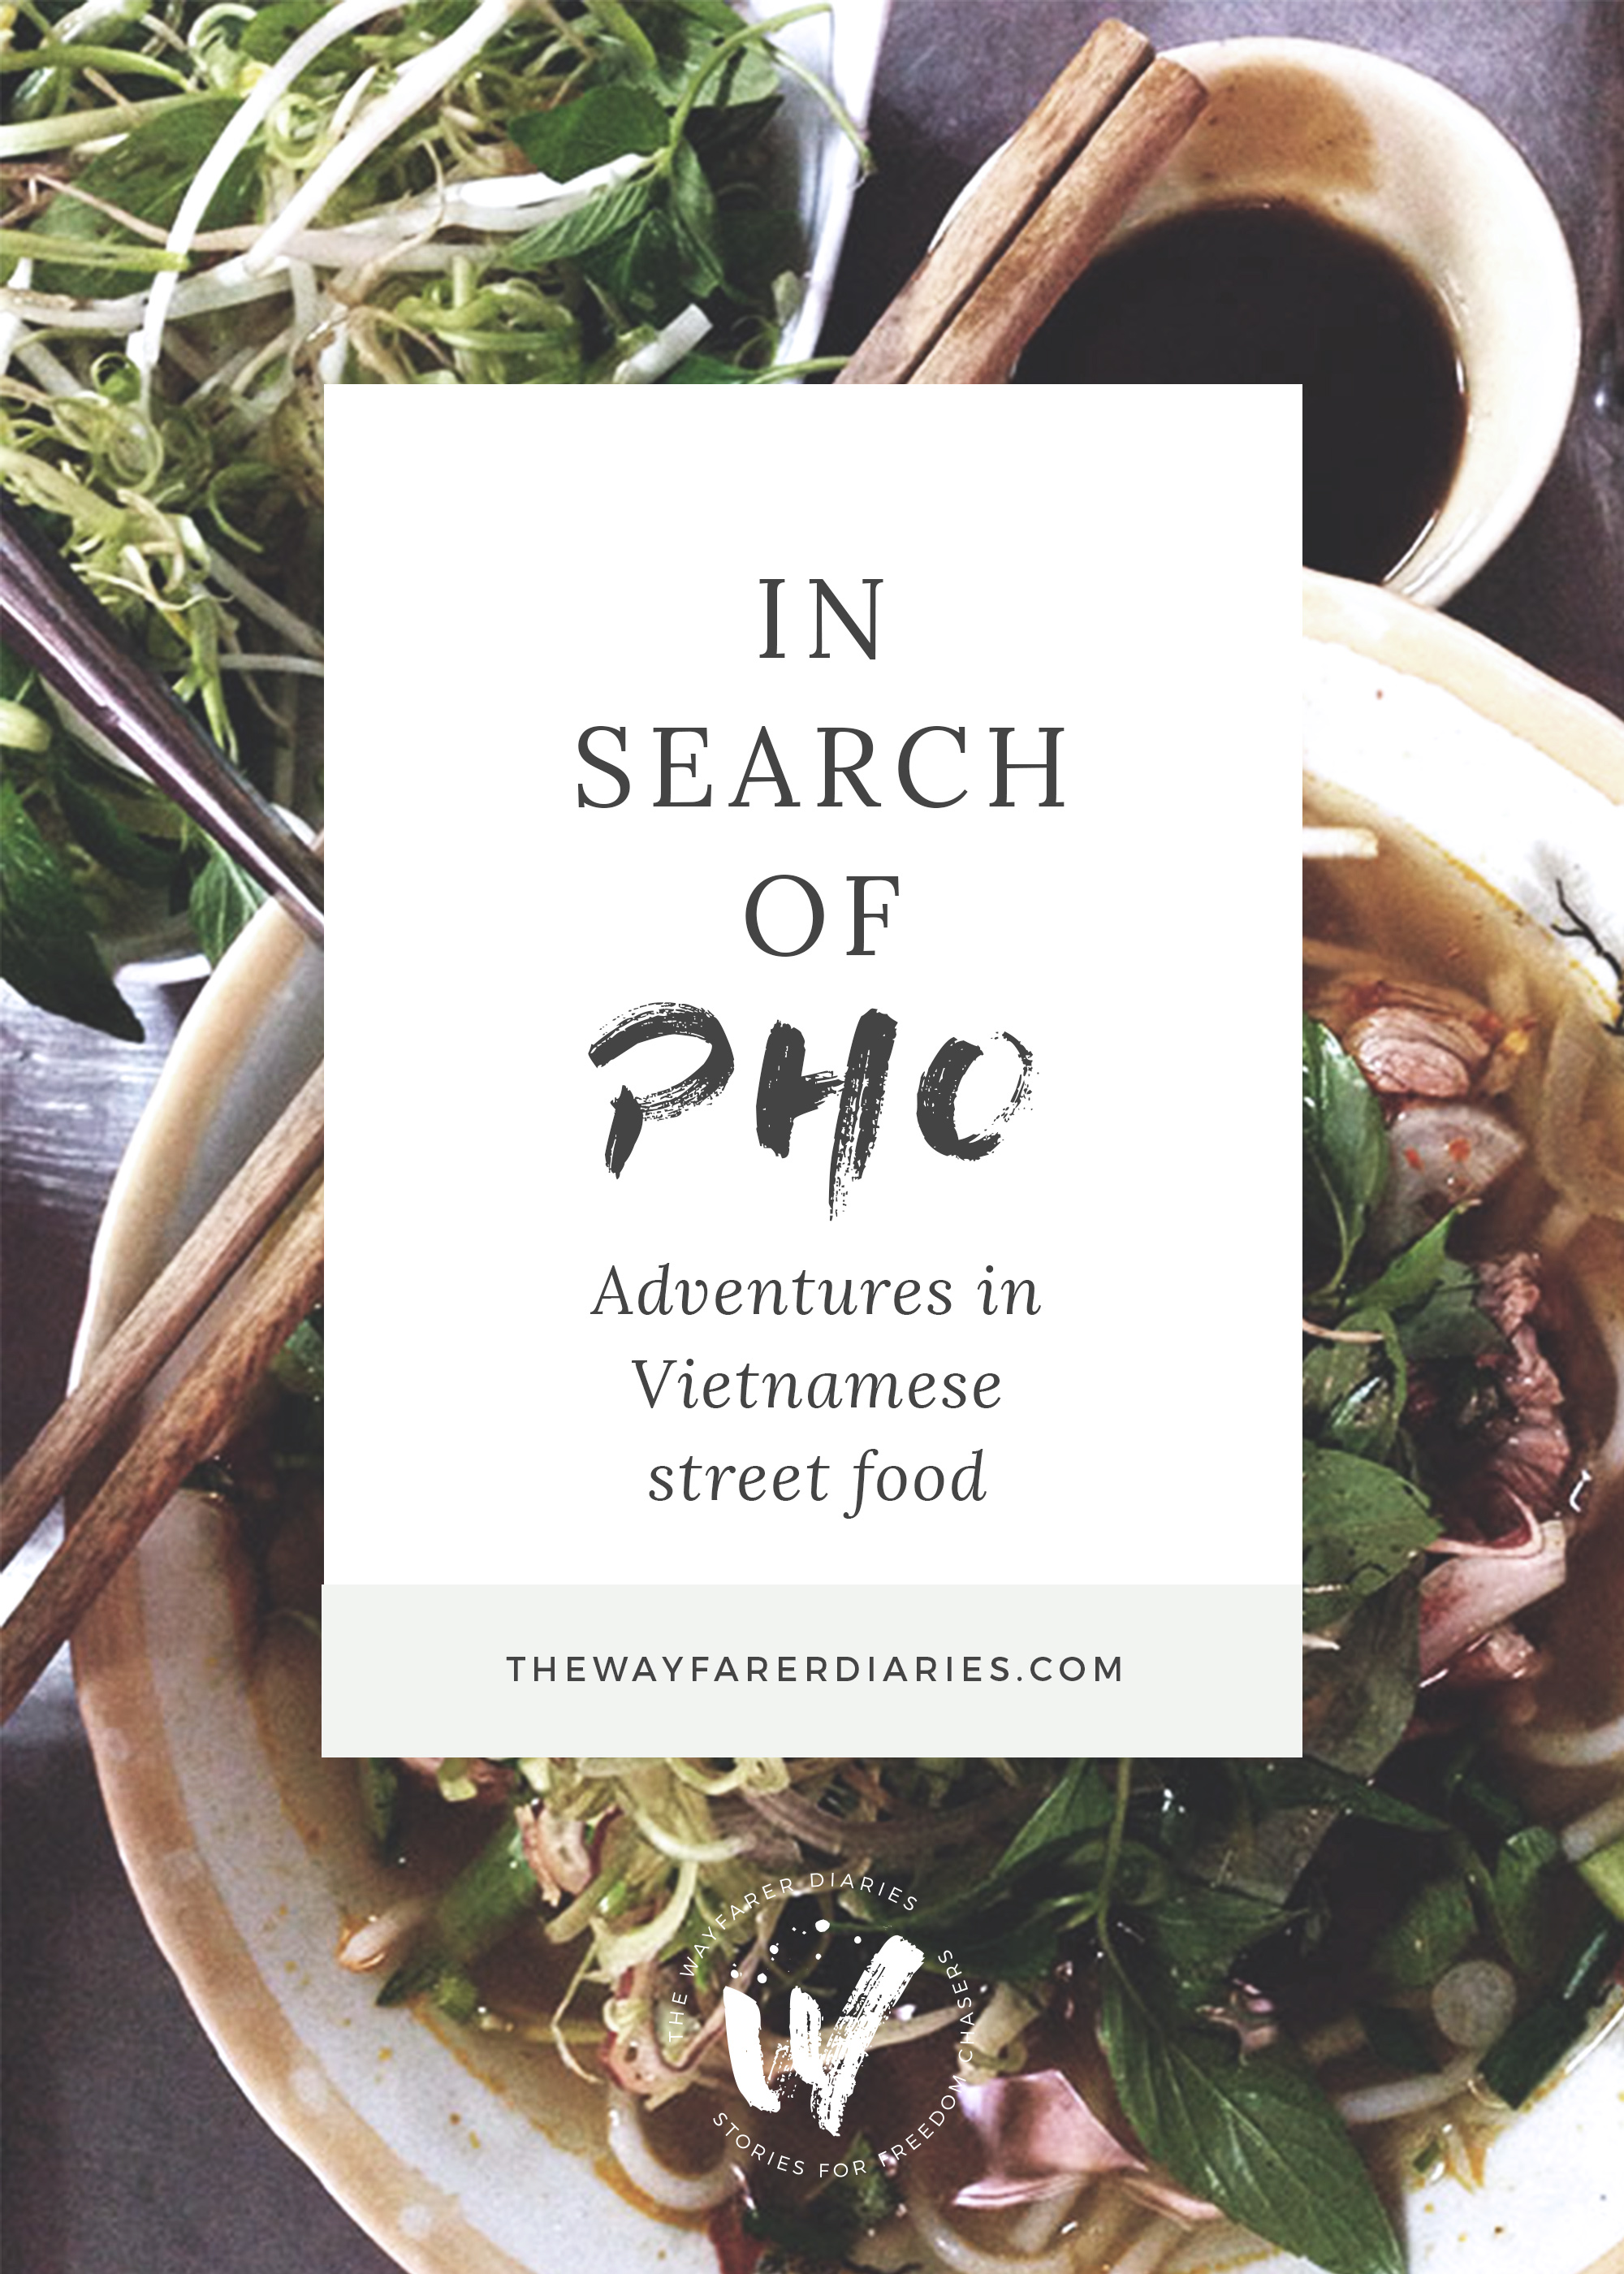 In Search of Pho | Adventures in Vietnamese Street Food - The Wayfarer Diaries